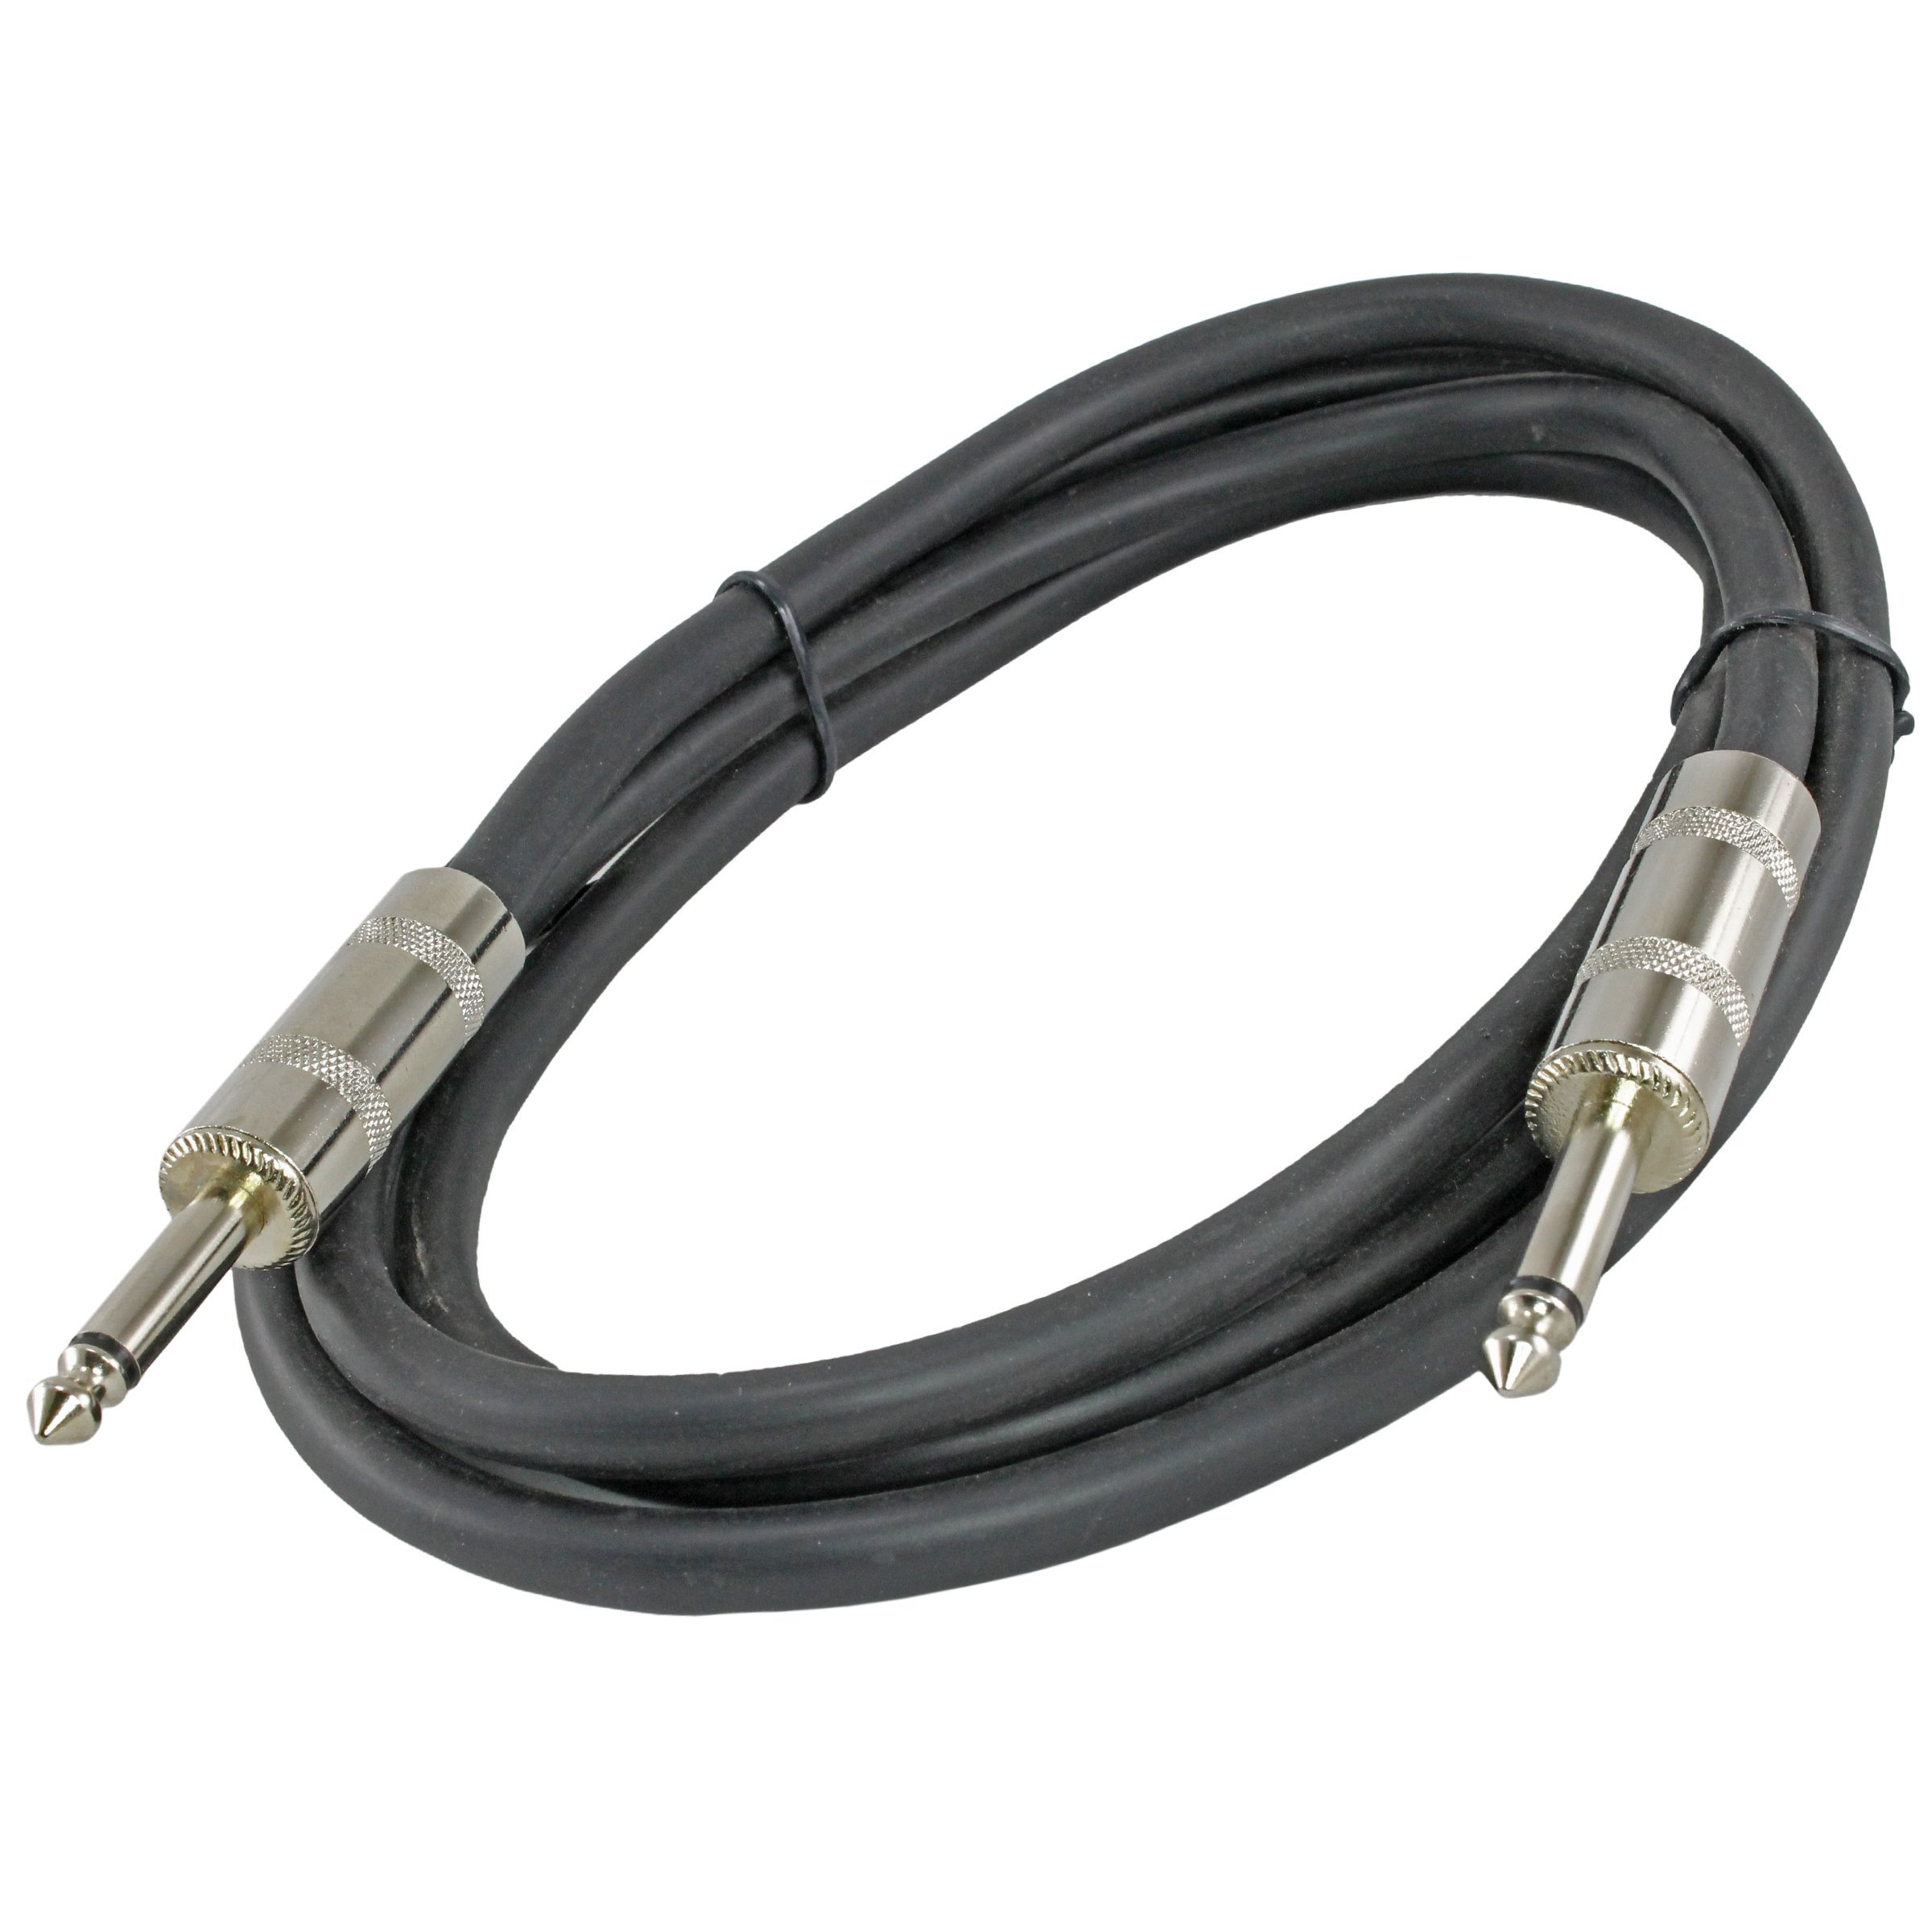 MCSPROAUDIO 12 Gauge Speaker Cables 2 CABLE PACK (6ft, 1/4'' to 1/4'') by MCSproaudio (Image #3)